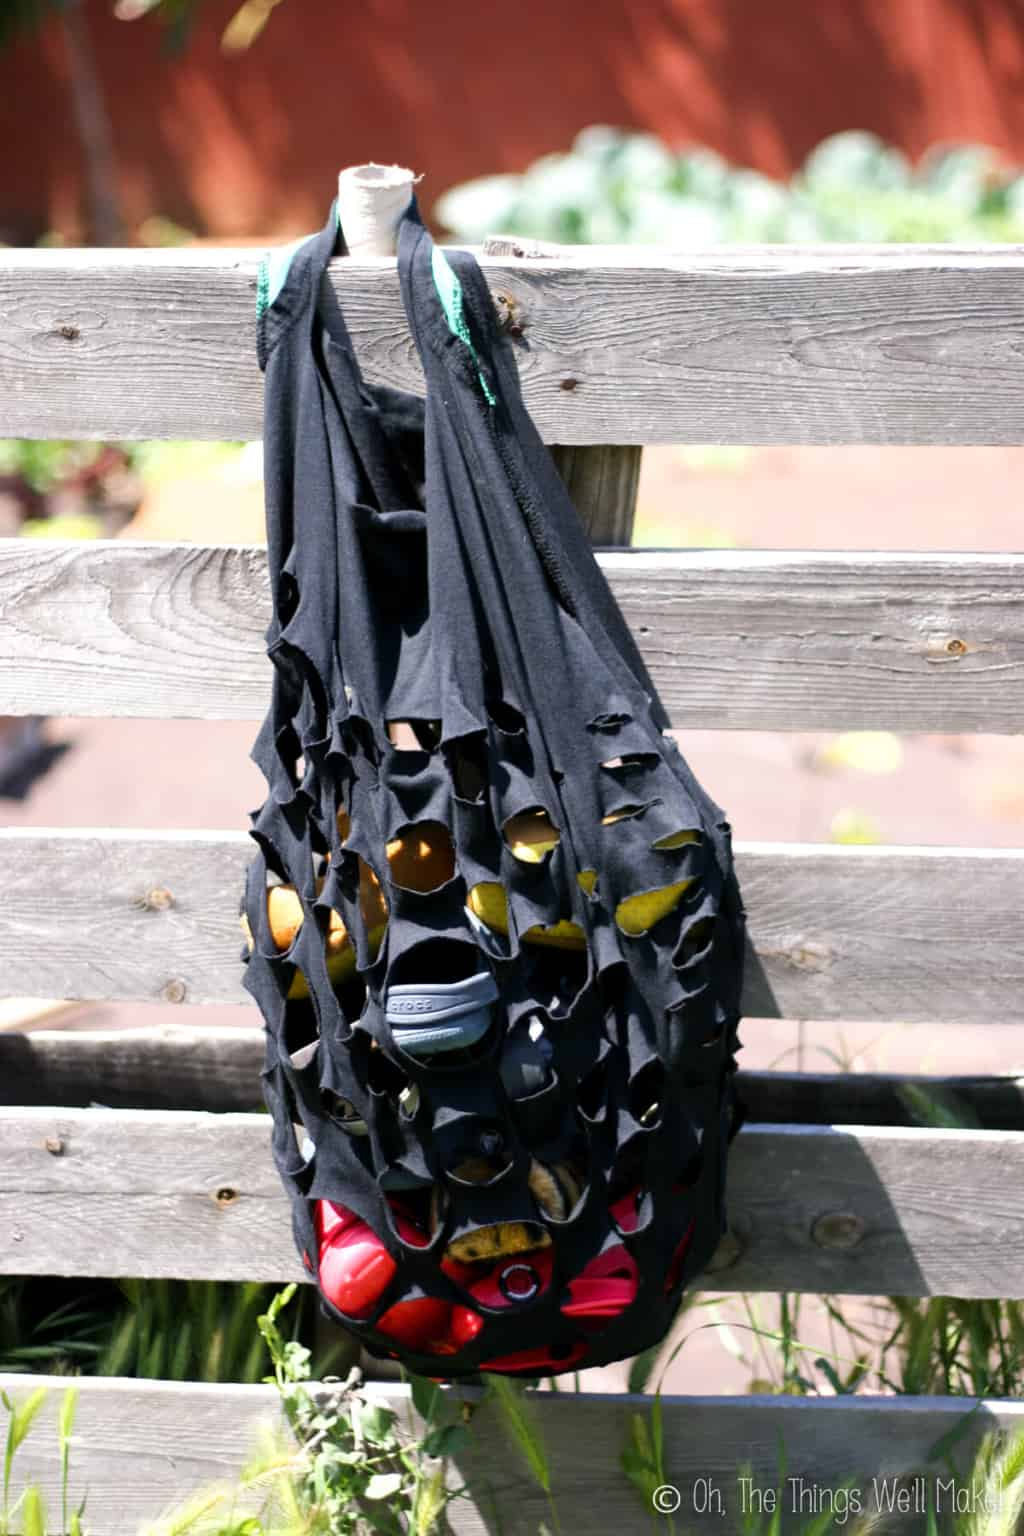 A handmade t-shirt black produce style bag with slits cut into it, filled with beach items hanging on a wood fence.